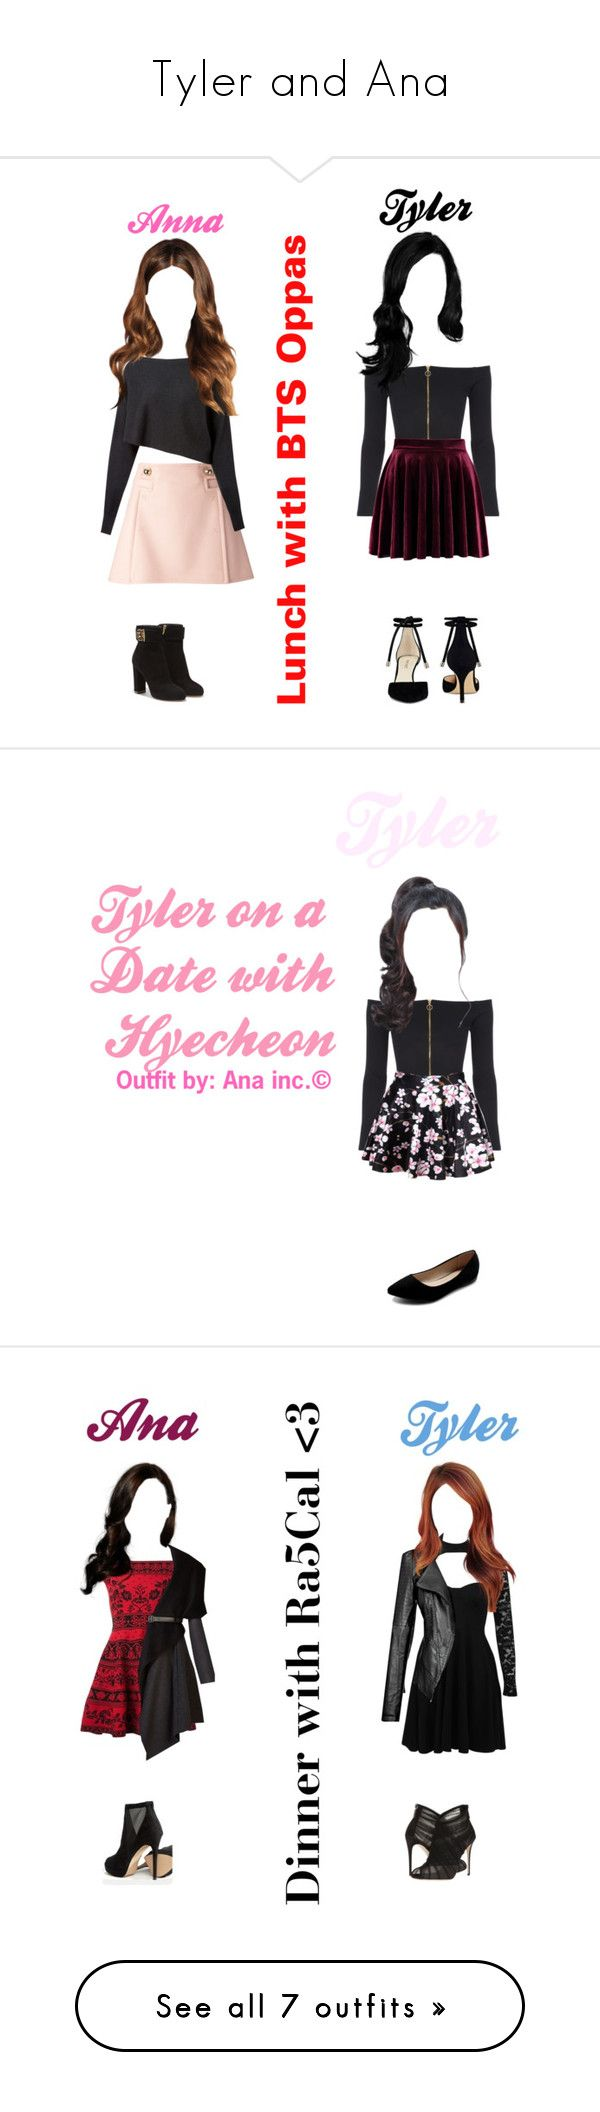 """""""Tyler and Ana"""" by ladonna-paiz ❤ liked on Polyvore featuring LE3NO, Puma, River Island, Jaded, Converse, TOMS, Boohoo, Alice + Olivia, Pierre Balmain and R13"""